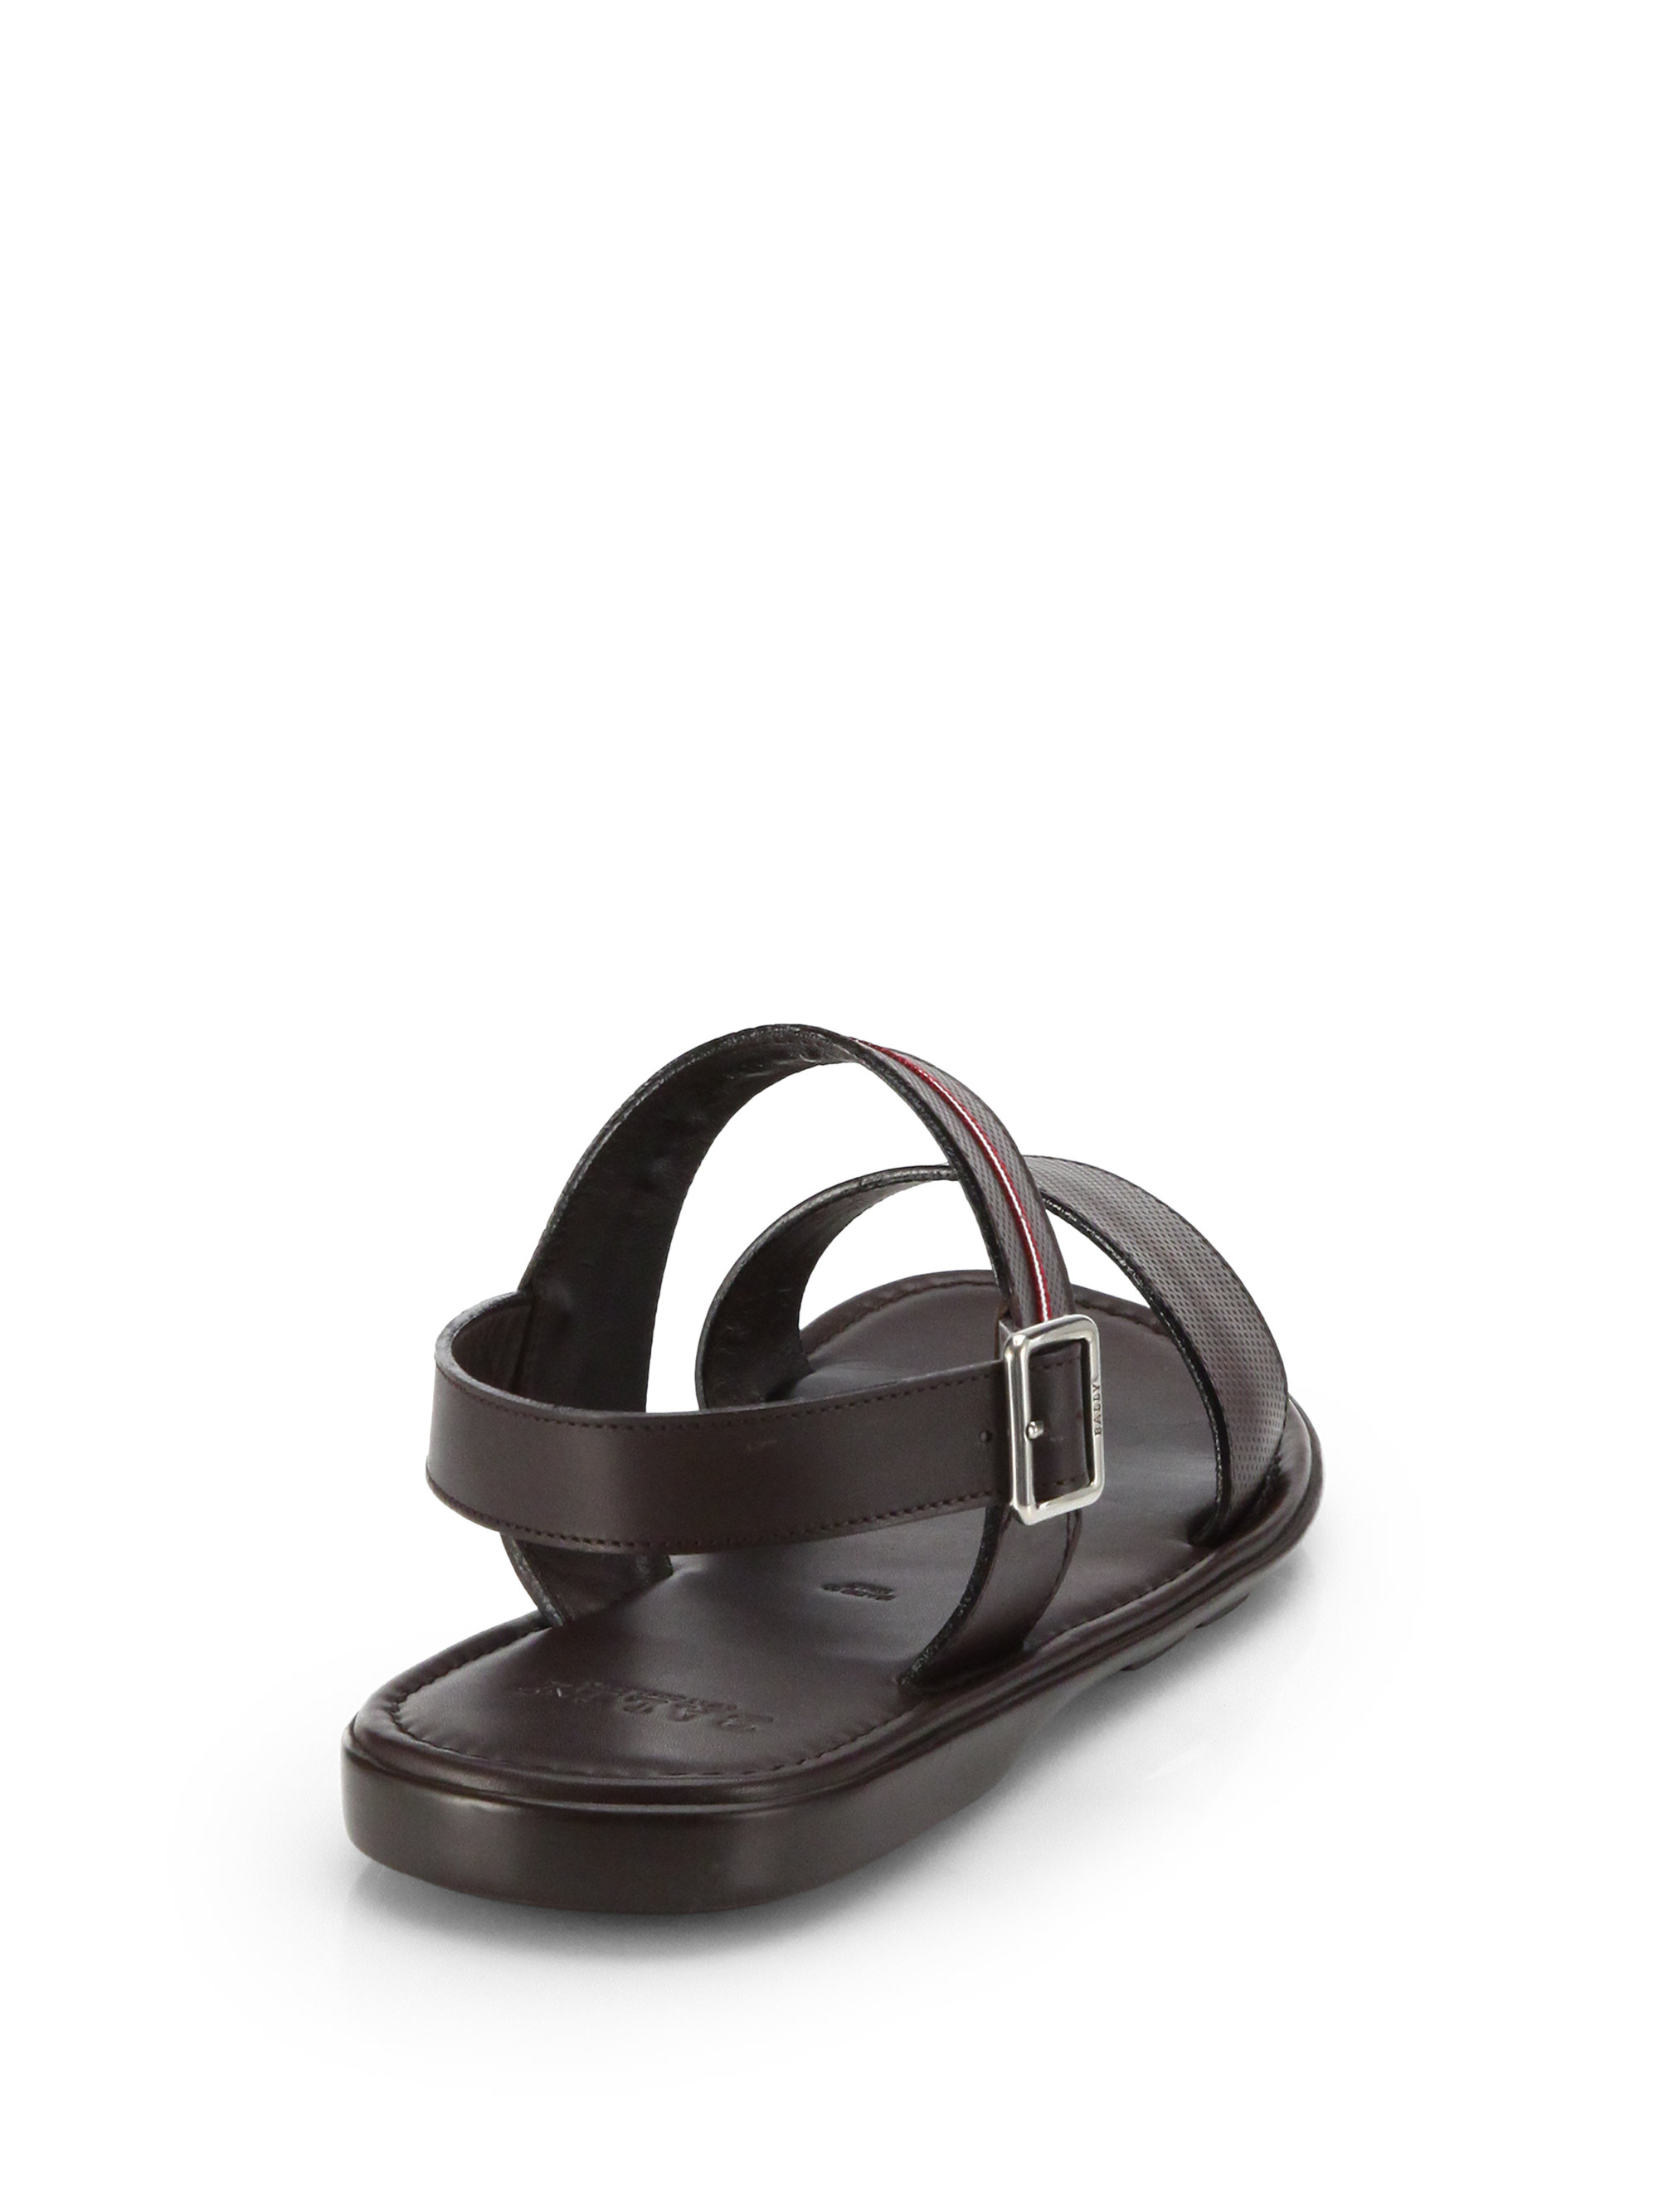 2bfb71b7f9b32d Lyst - Bally Perforated Leather Sandals in Brown for Men